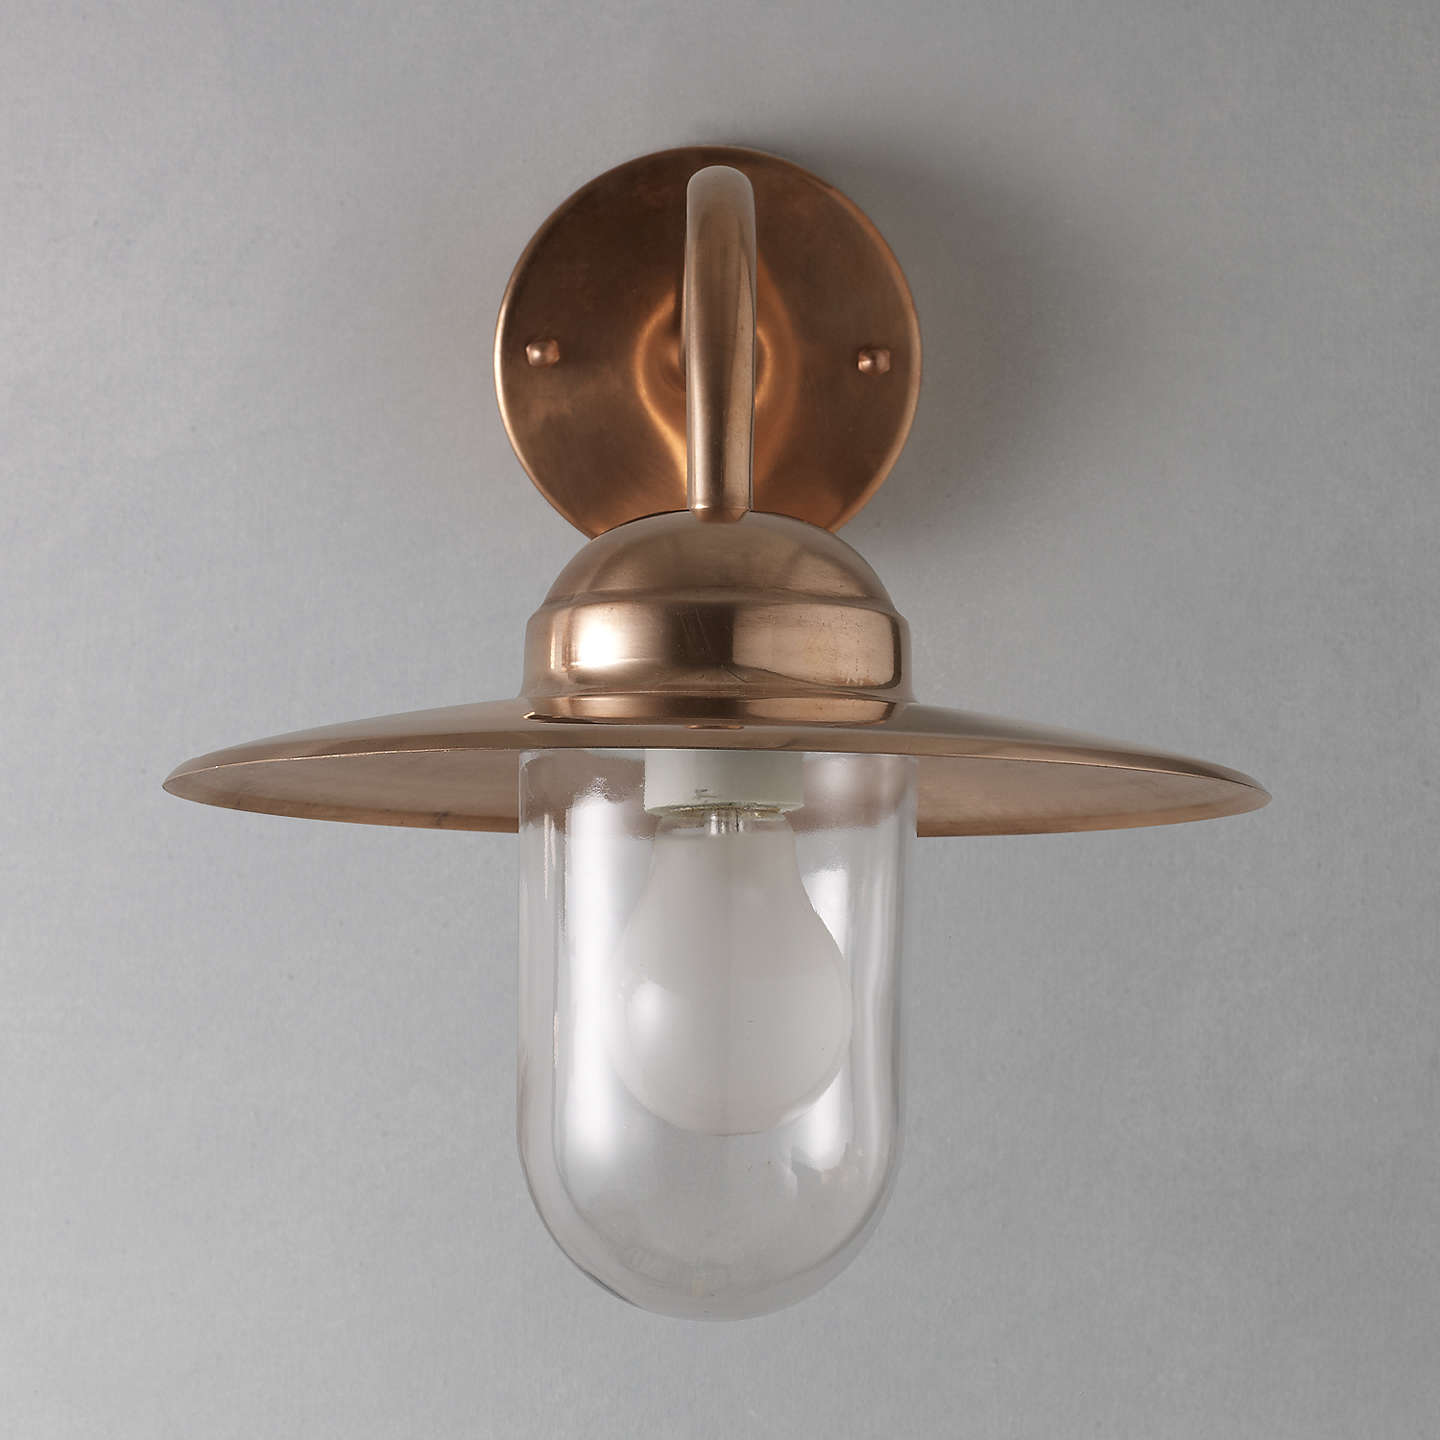 Nordlux luxembourg outdoor wall light at john lewis buynordlux luxembourg outdoor wall light copper online at johnlewis aloadofball Choice Image